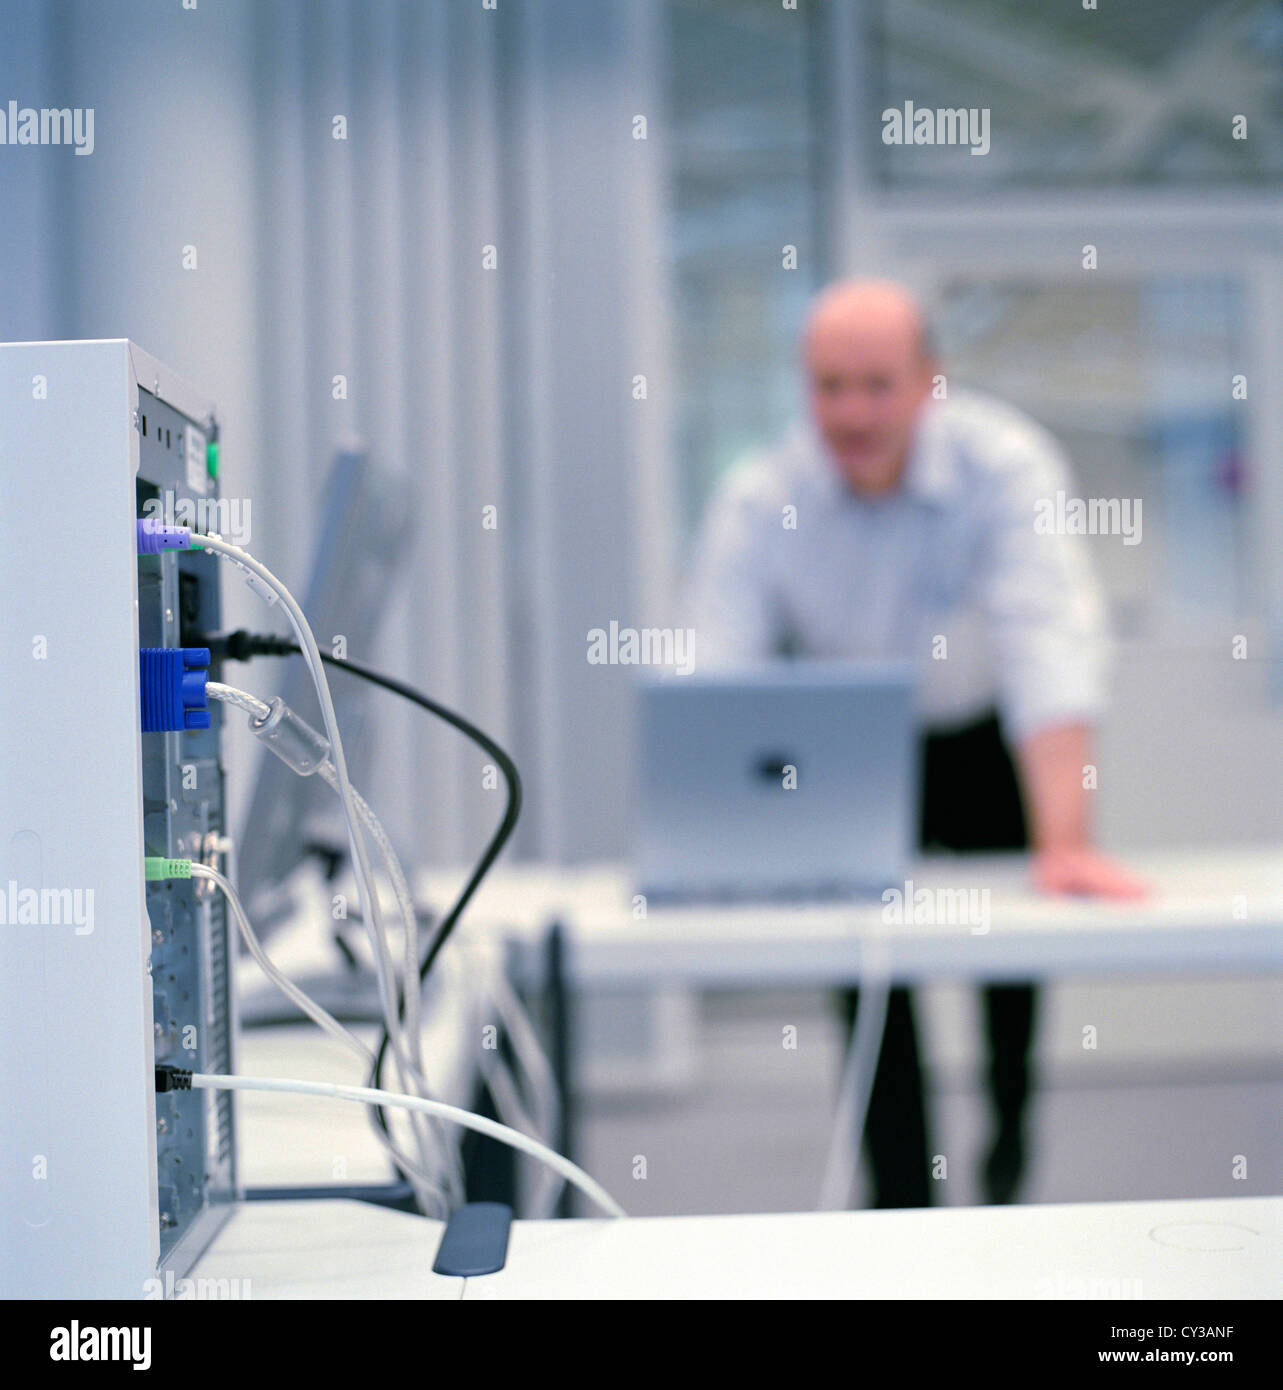 business people data center control center man License free except ads and outdoor billboards - Stock Image